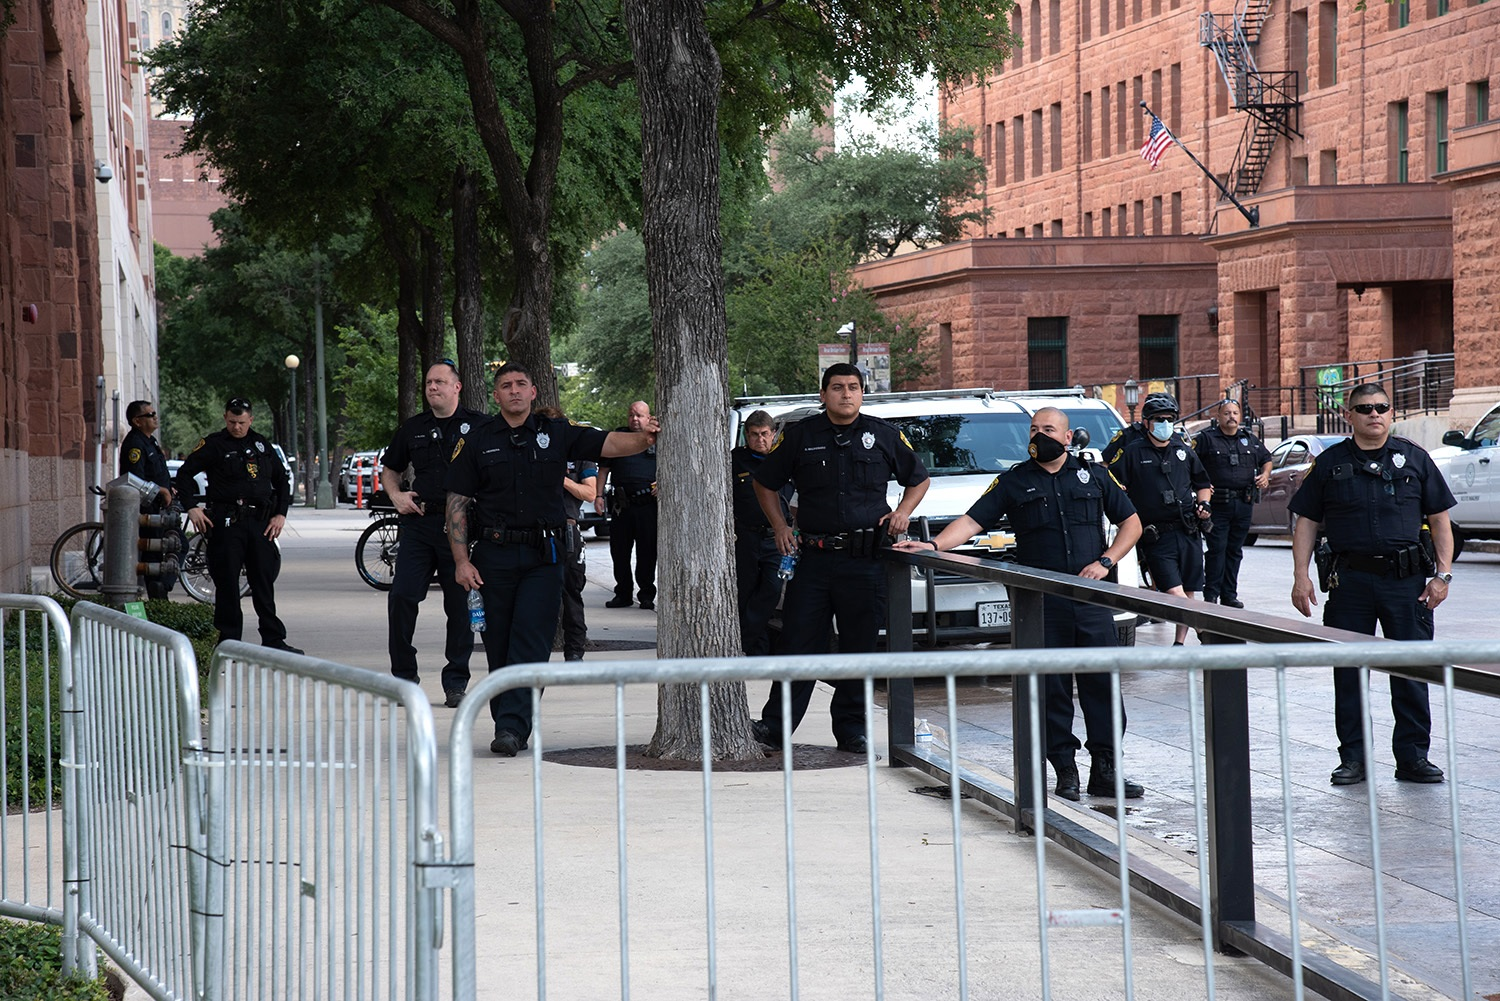 San Antonio police officers stand behind a fence while watching protestors Thursday, June 4 on W Nueva St. Photo by V. Finster | Heron Contributor